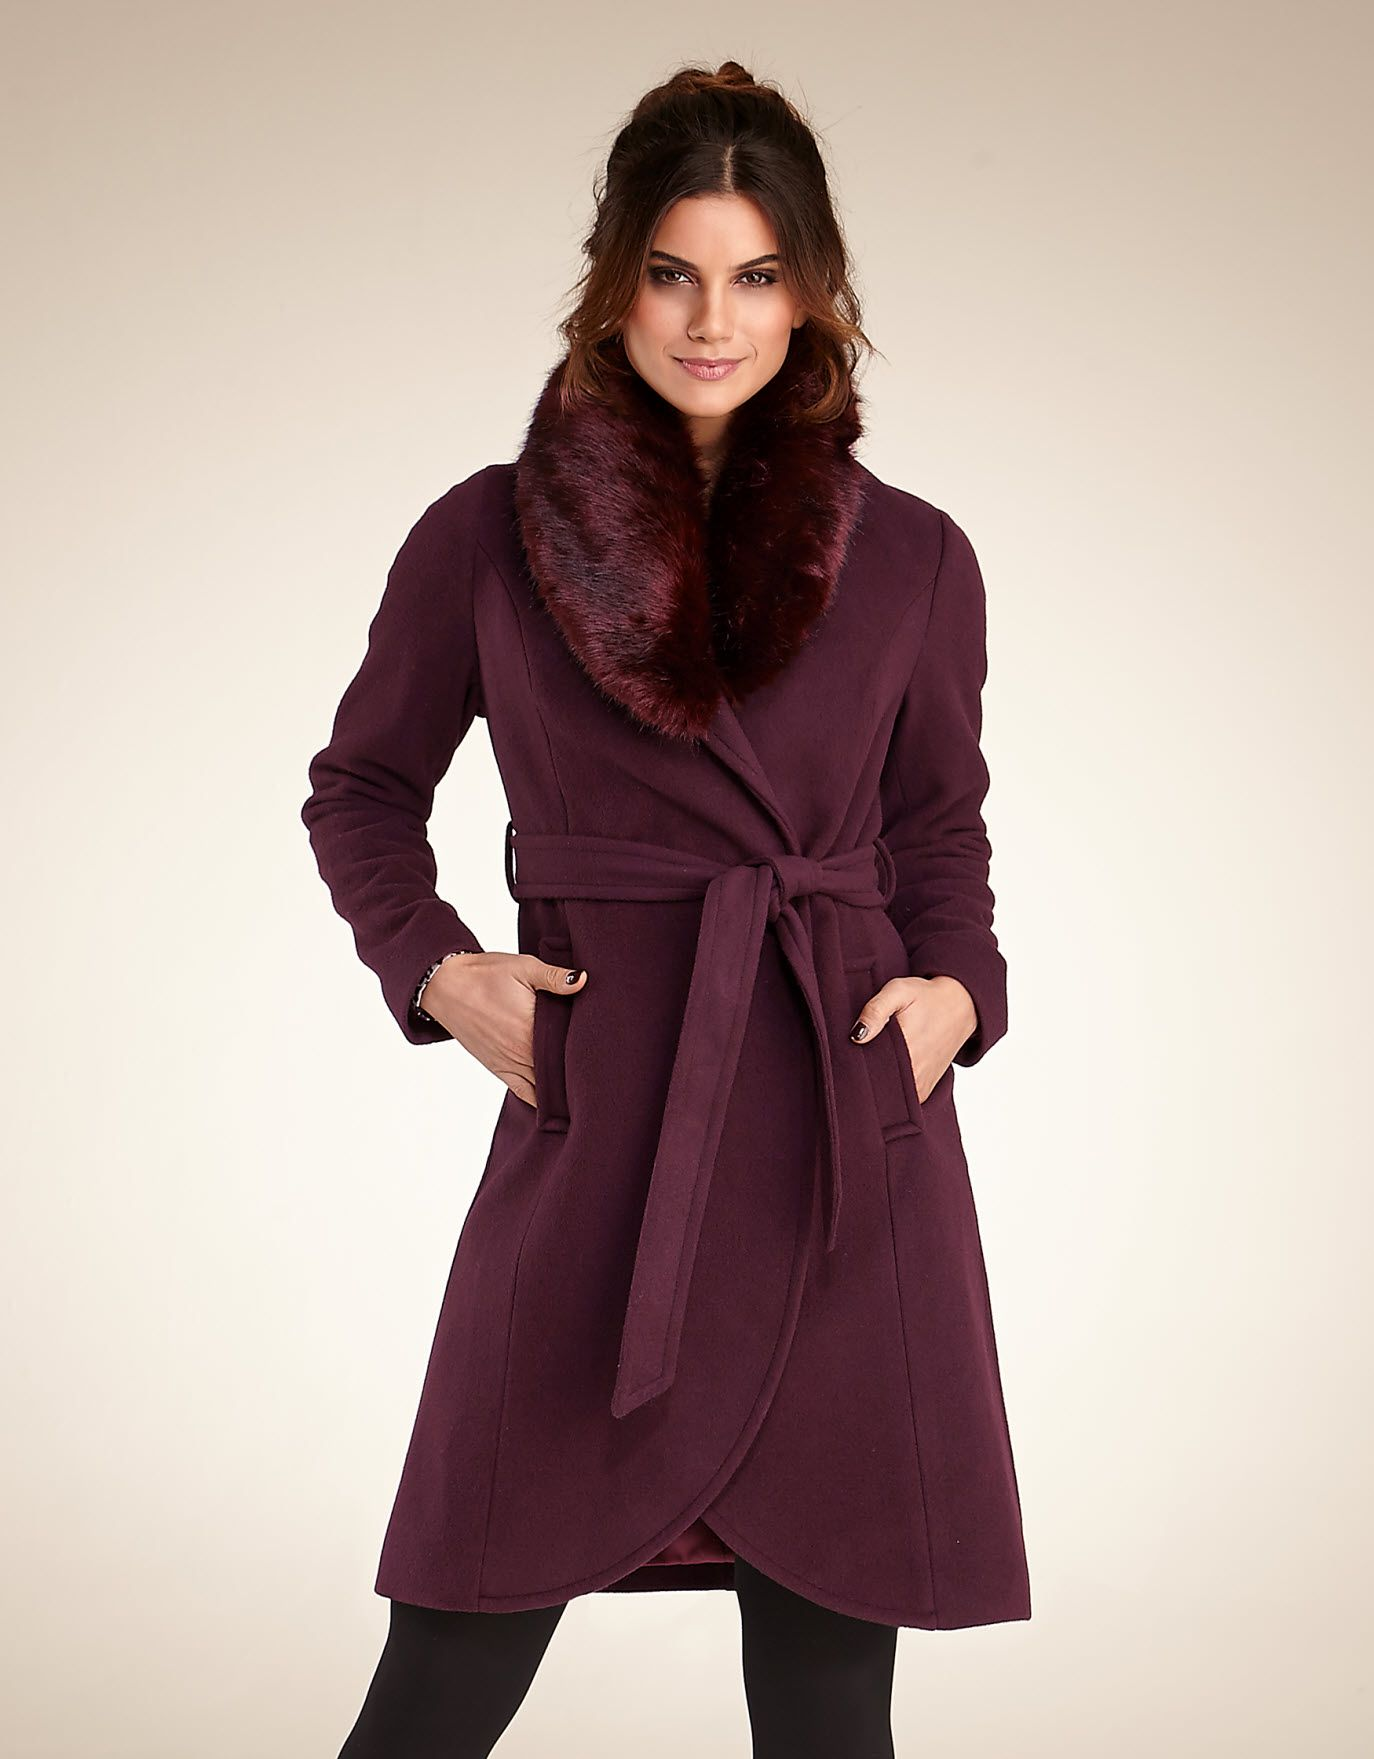 Faux Fur Collar Coat in Plum by Pepperberry | Part 2: Fashion and ...